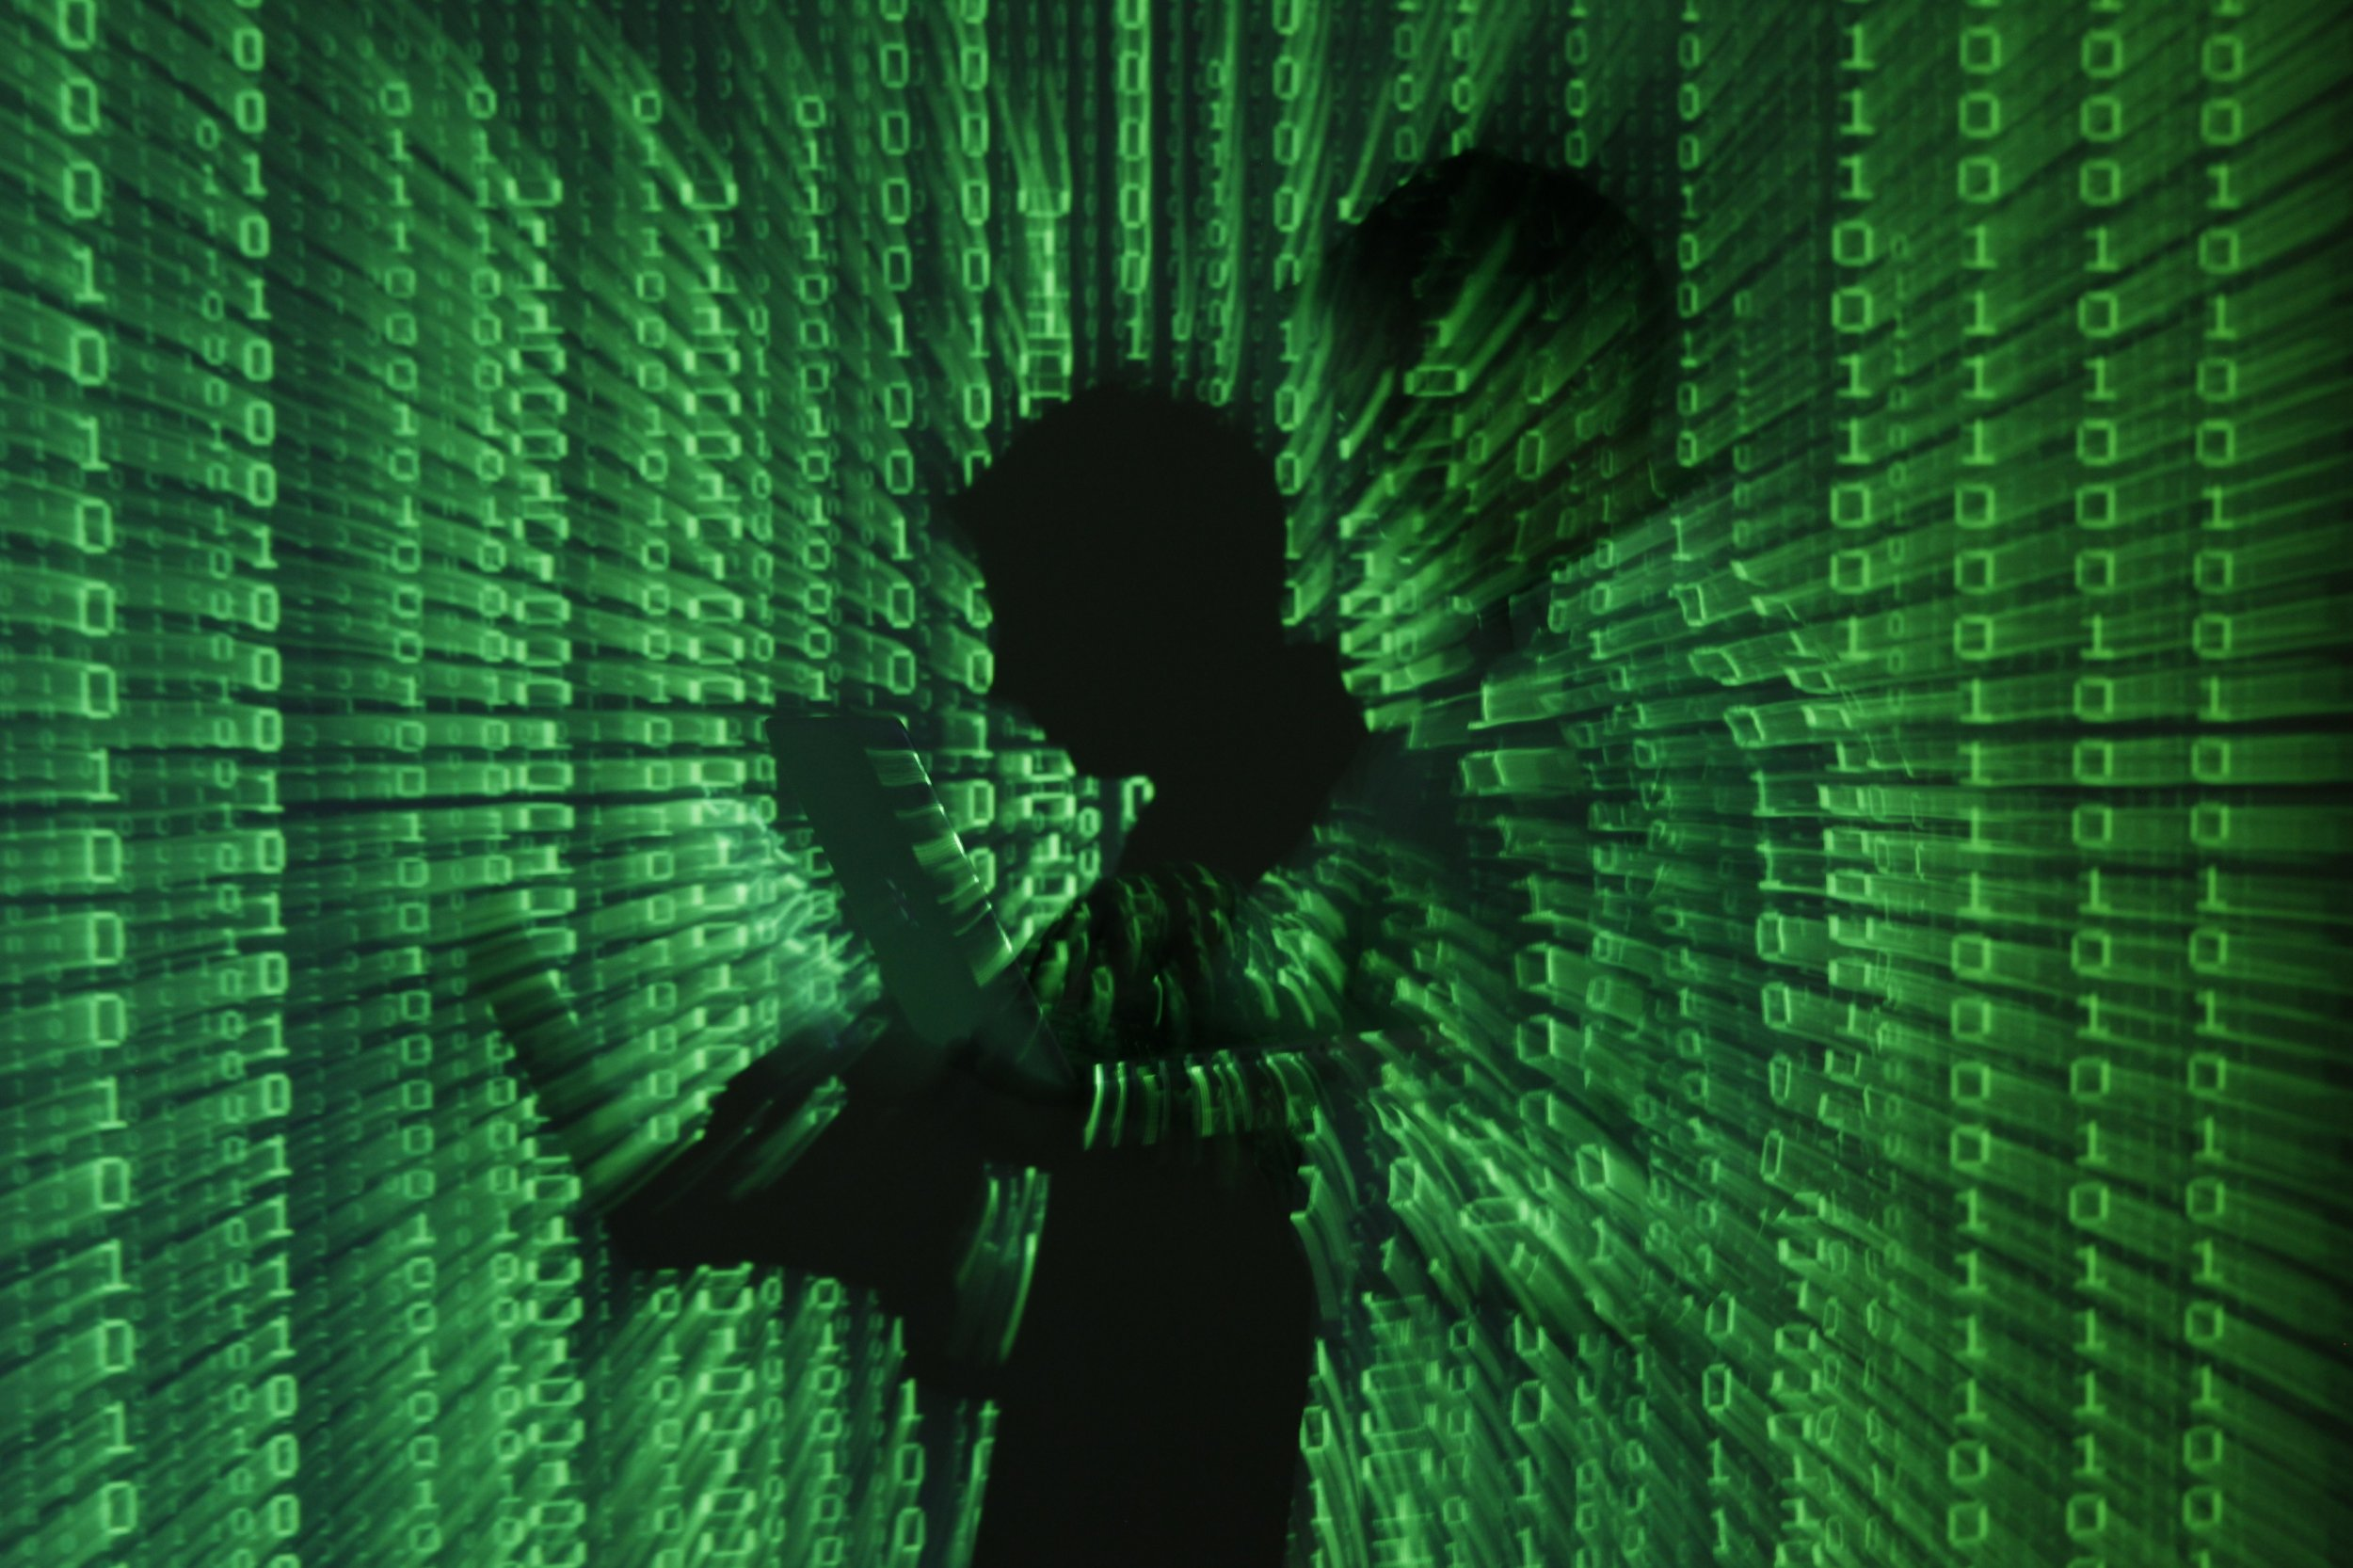 cyber security hackers anonymous pakistan